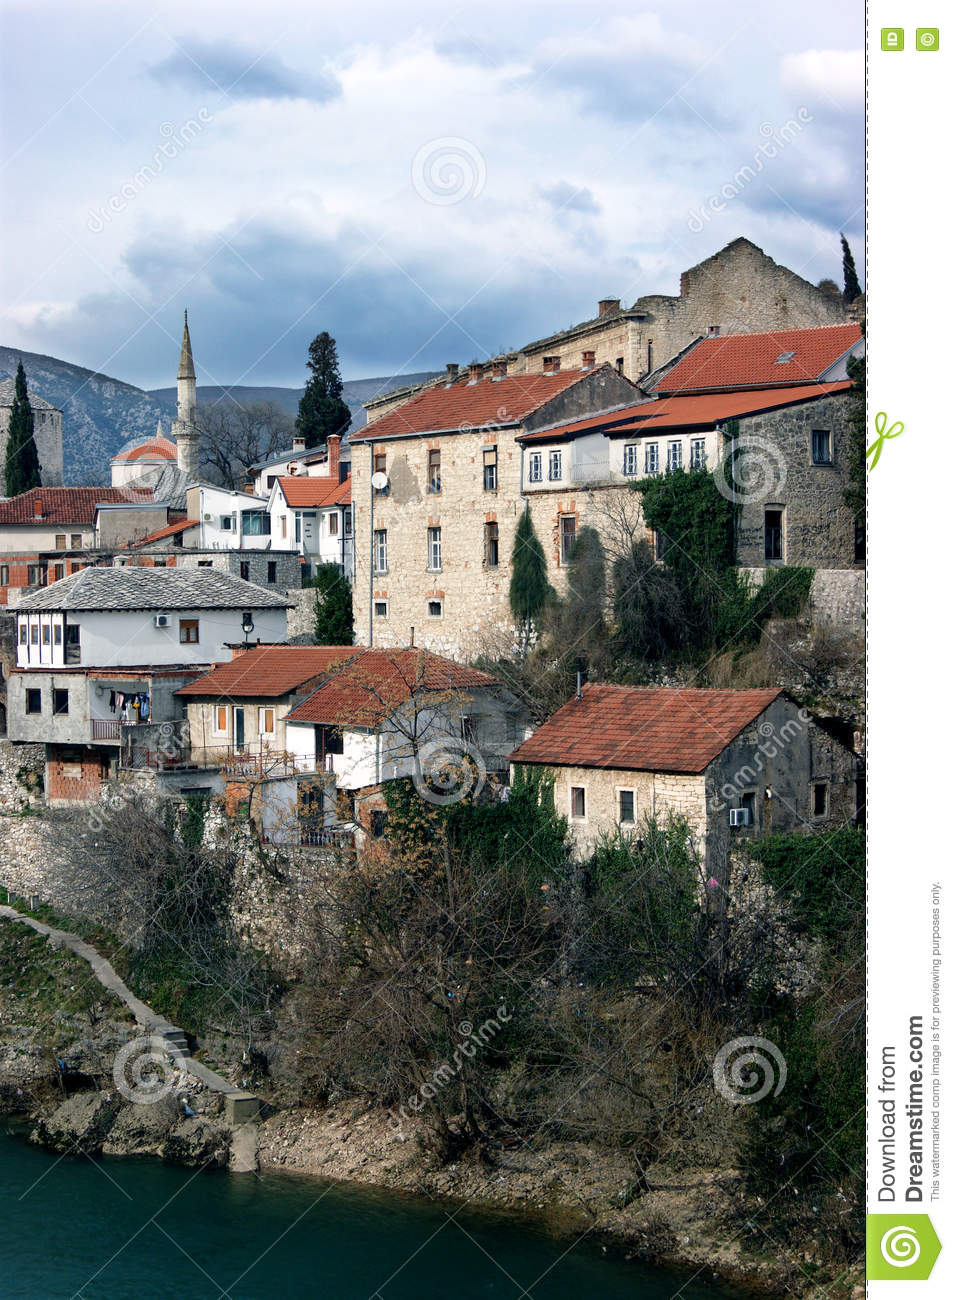 View of the left bank of the historic quarter in Mostar